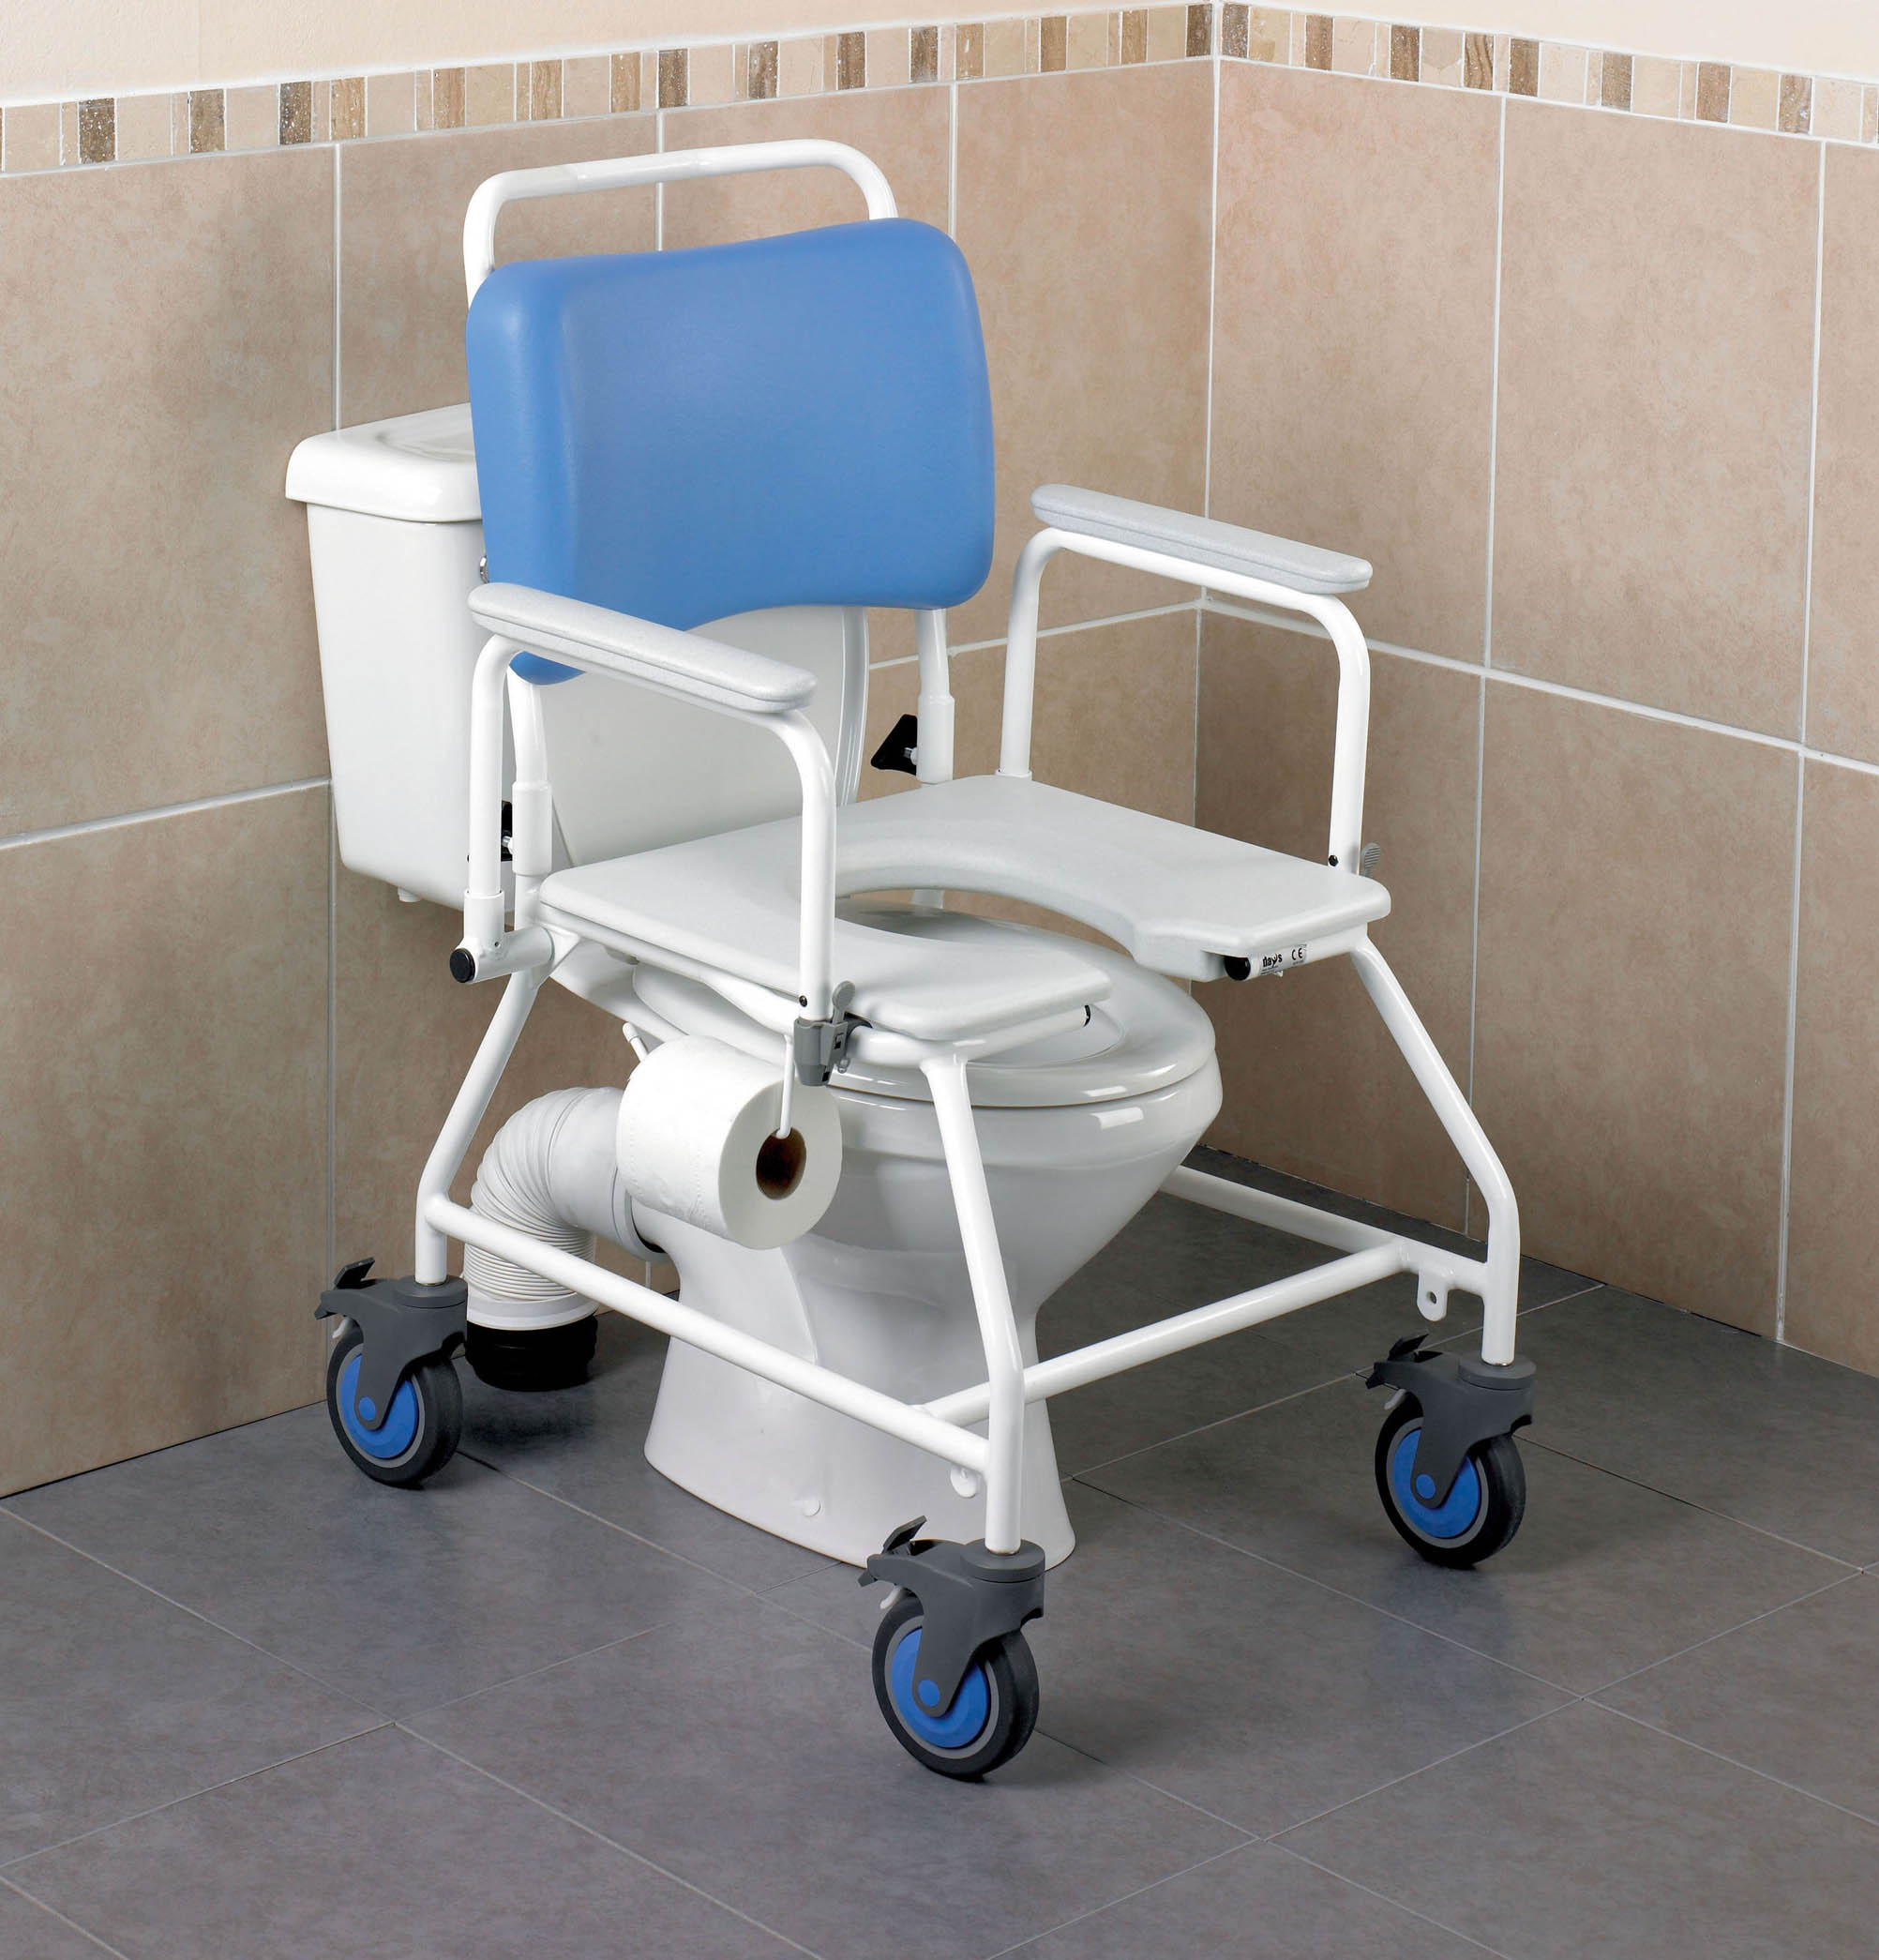 Atlantic Bariatric Commode Sho wer - 22Inch